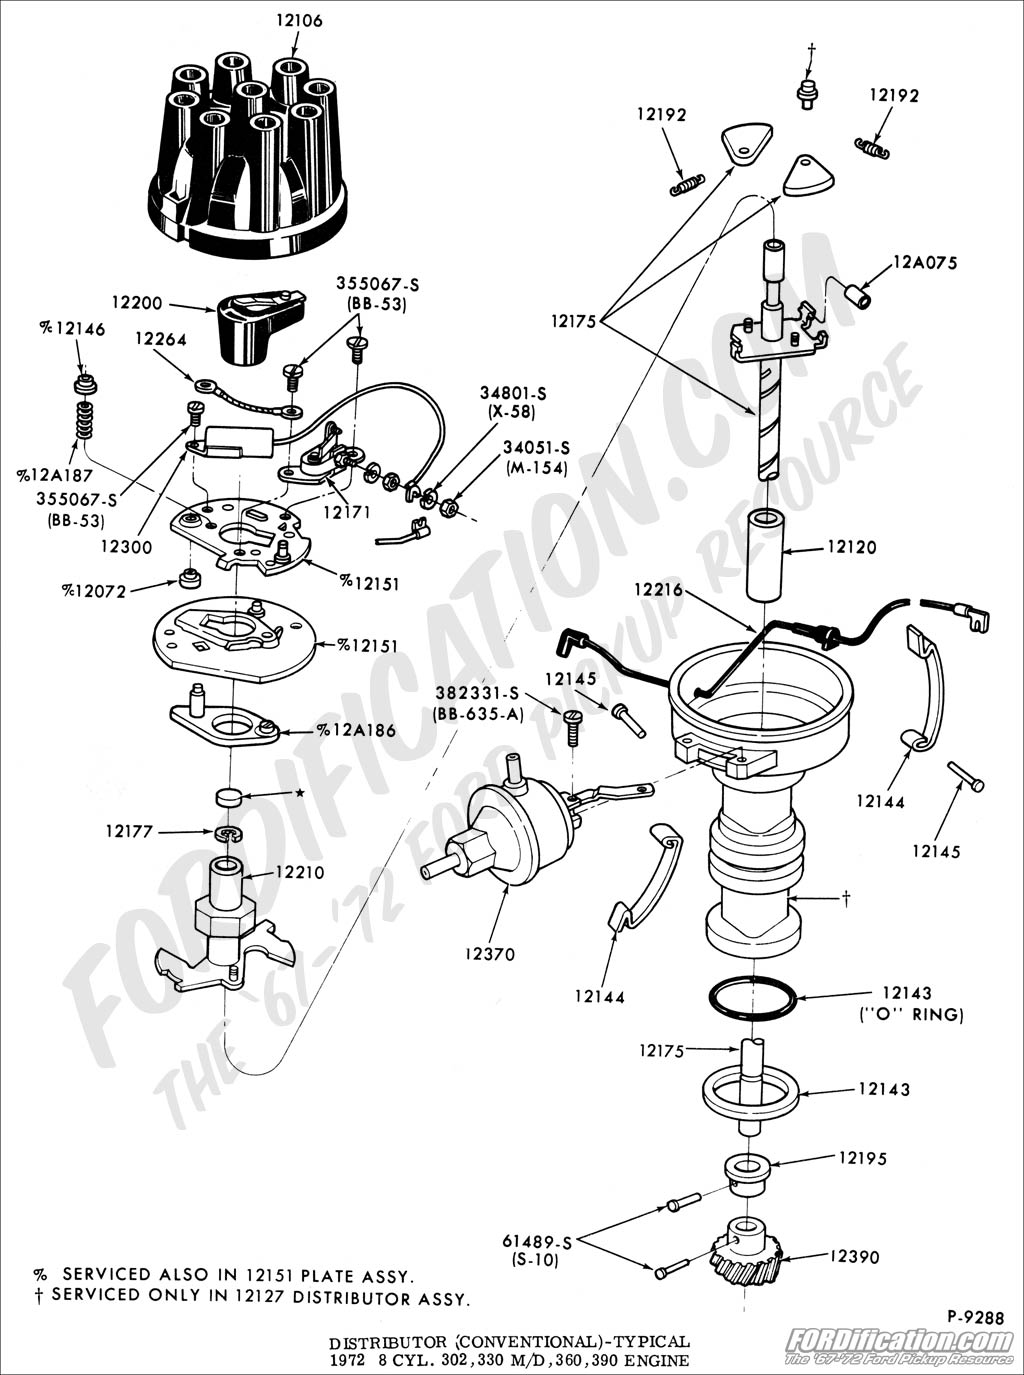 distributor_V8 02 ford truck technical drawings and schematics section i 1989 F250 Wiring Diagram at bayanpartner.co